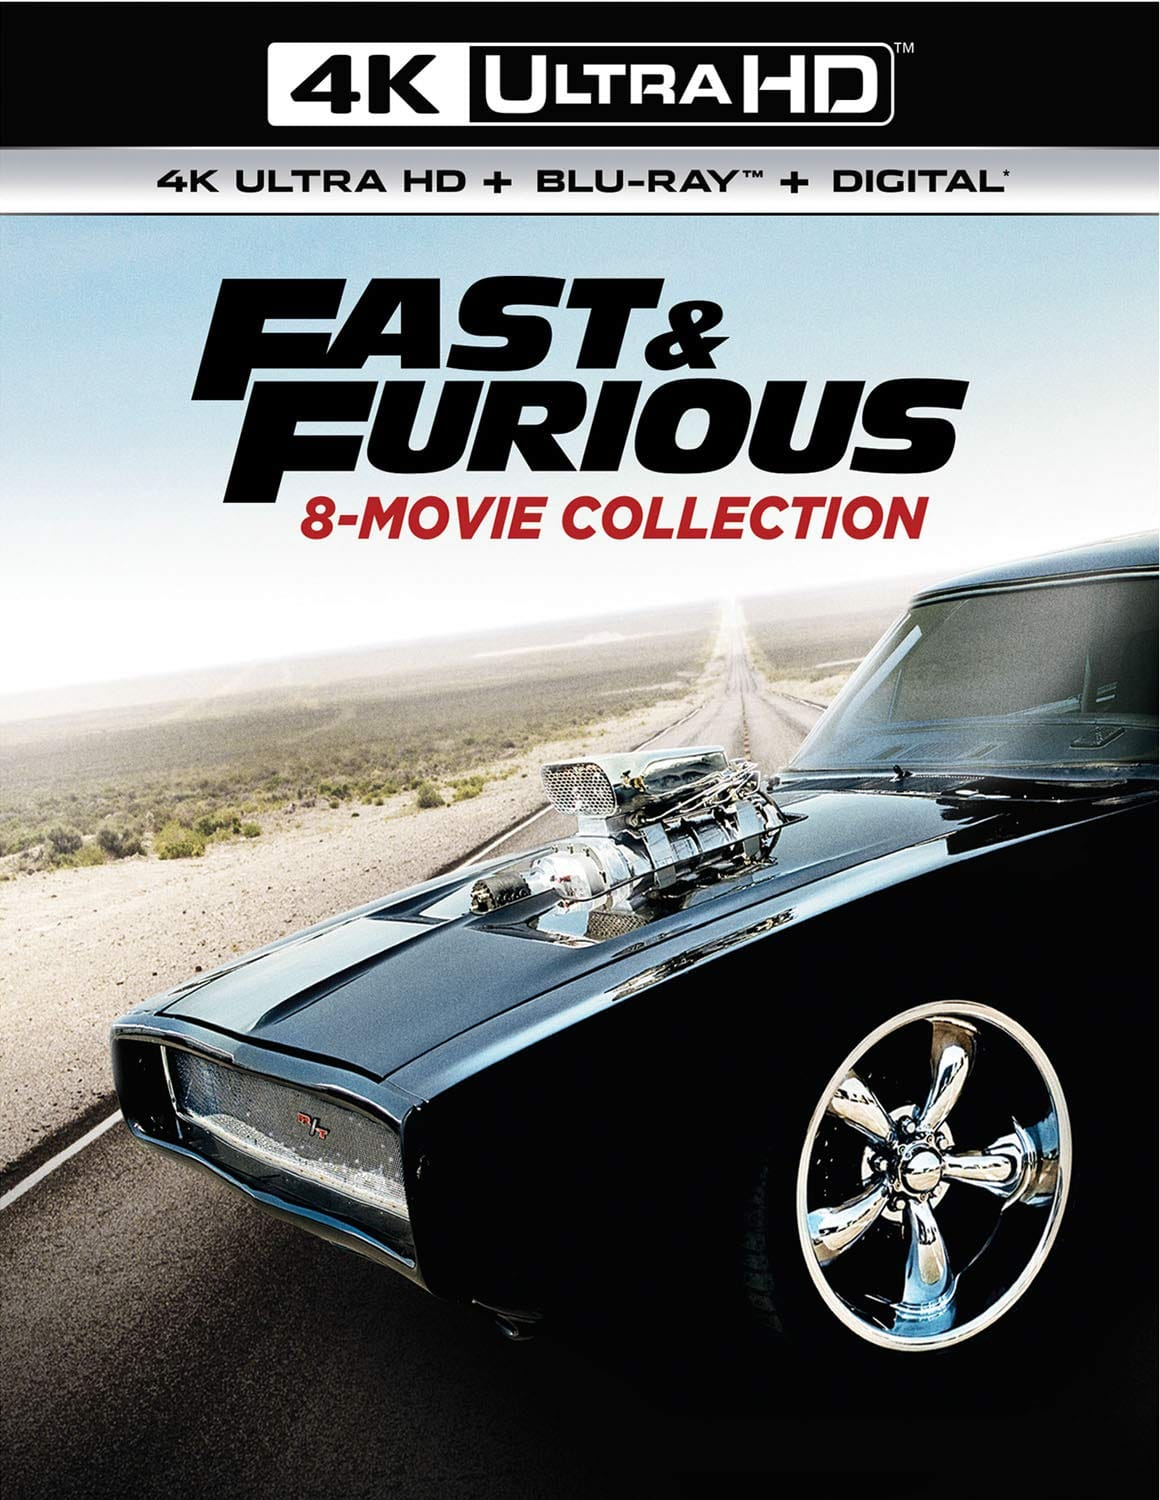 Fast & Furious 8-Movie Collection 4K UHD + Bluray + digital $60 $59.99